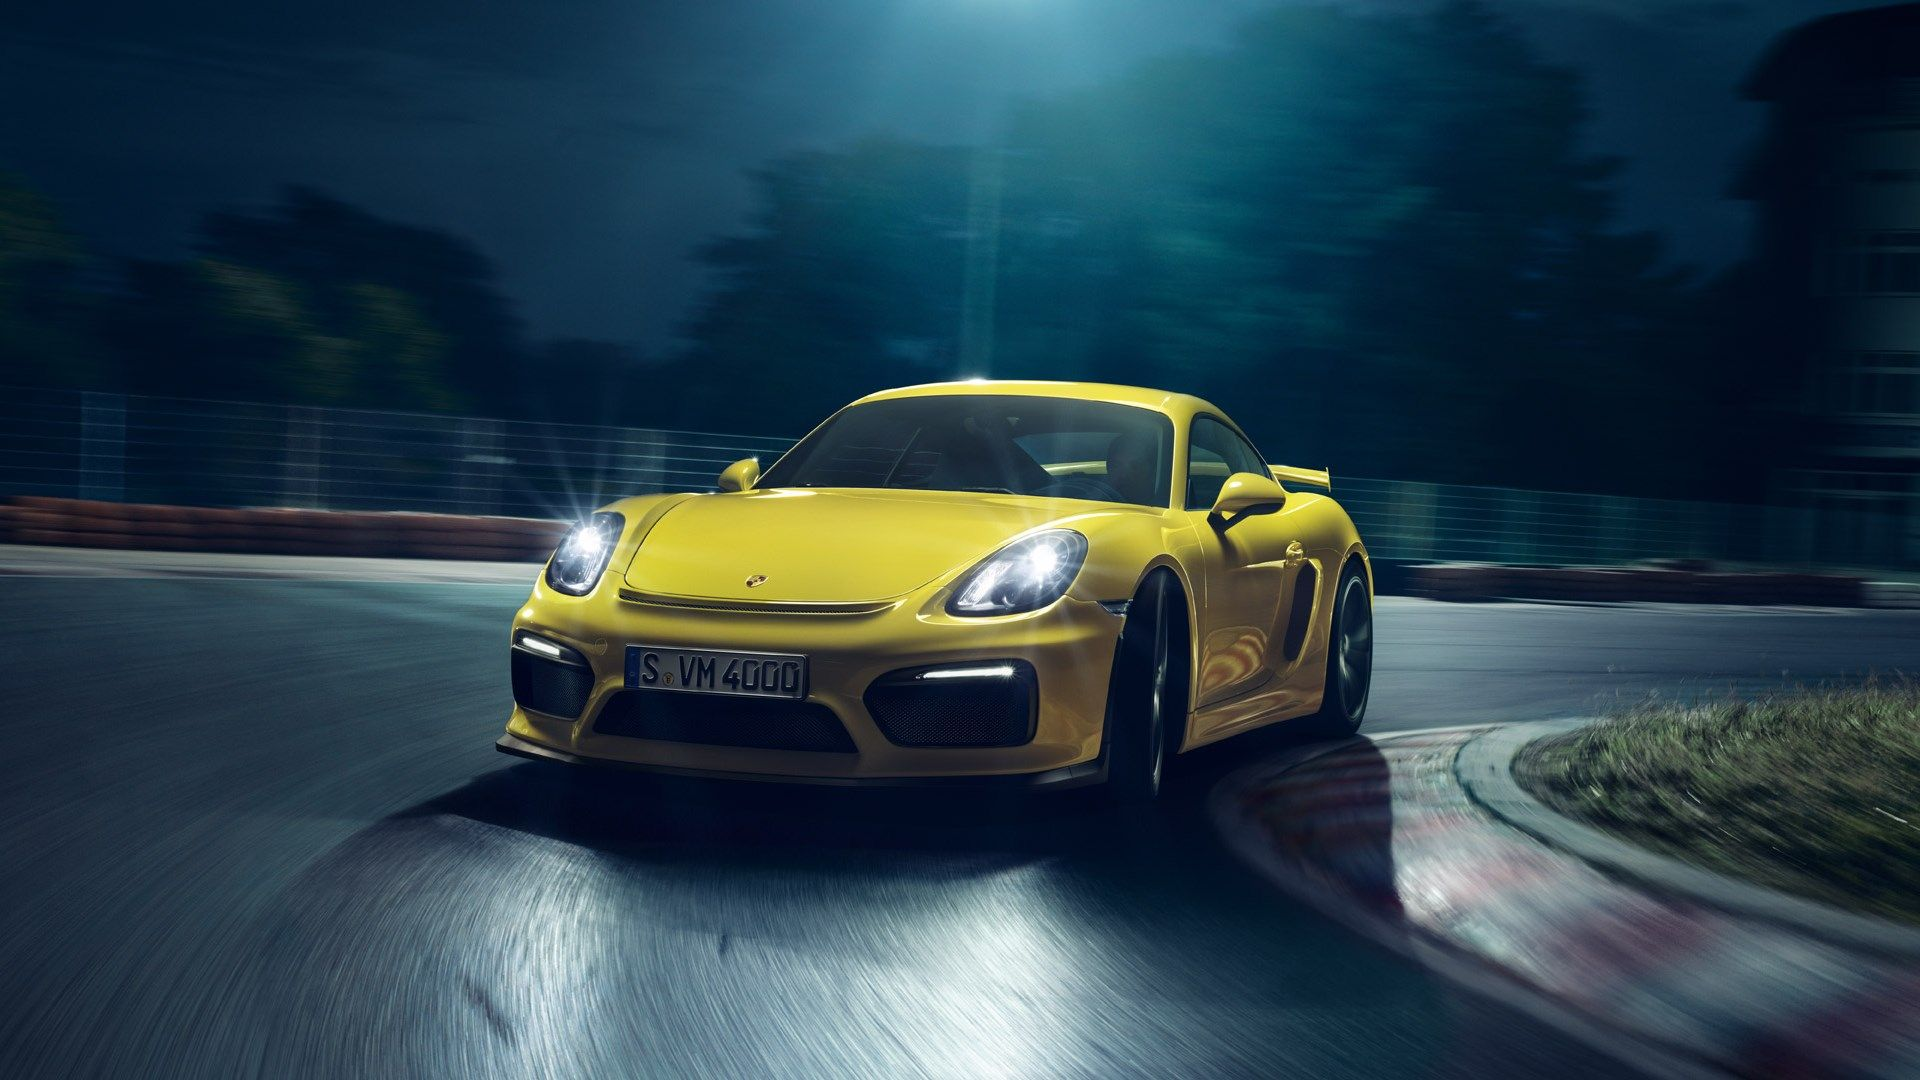 High Resolution Wallpapers Widescreen Porsche Cayman Gt4